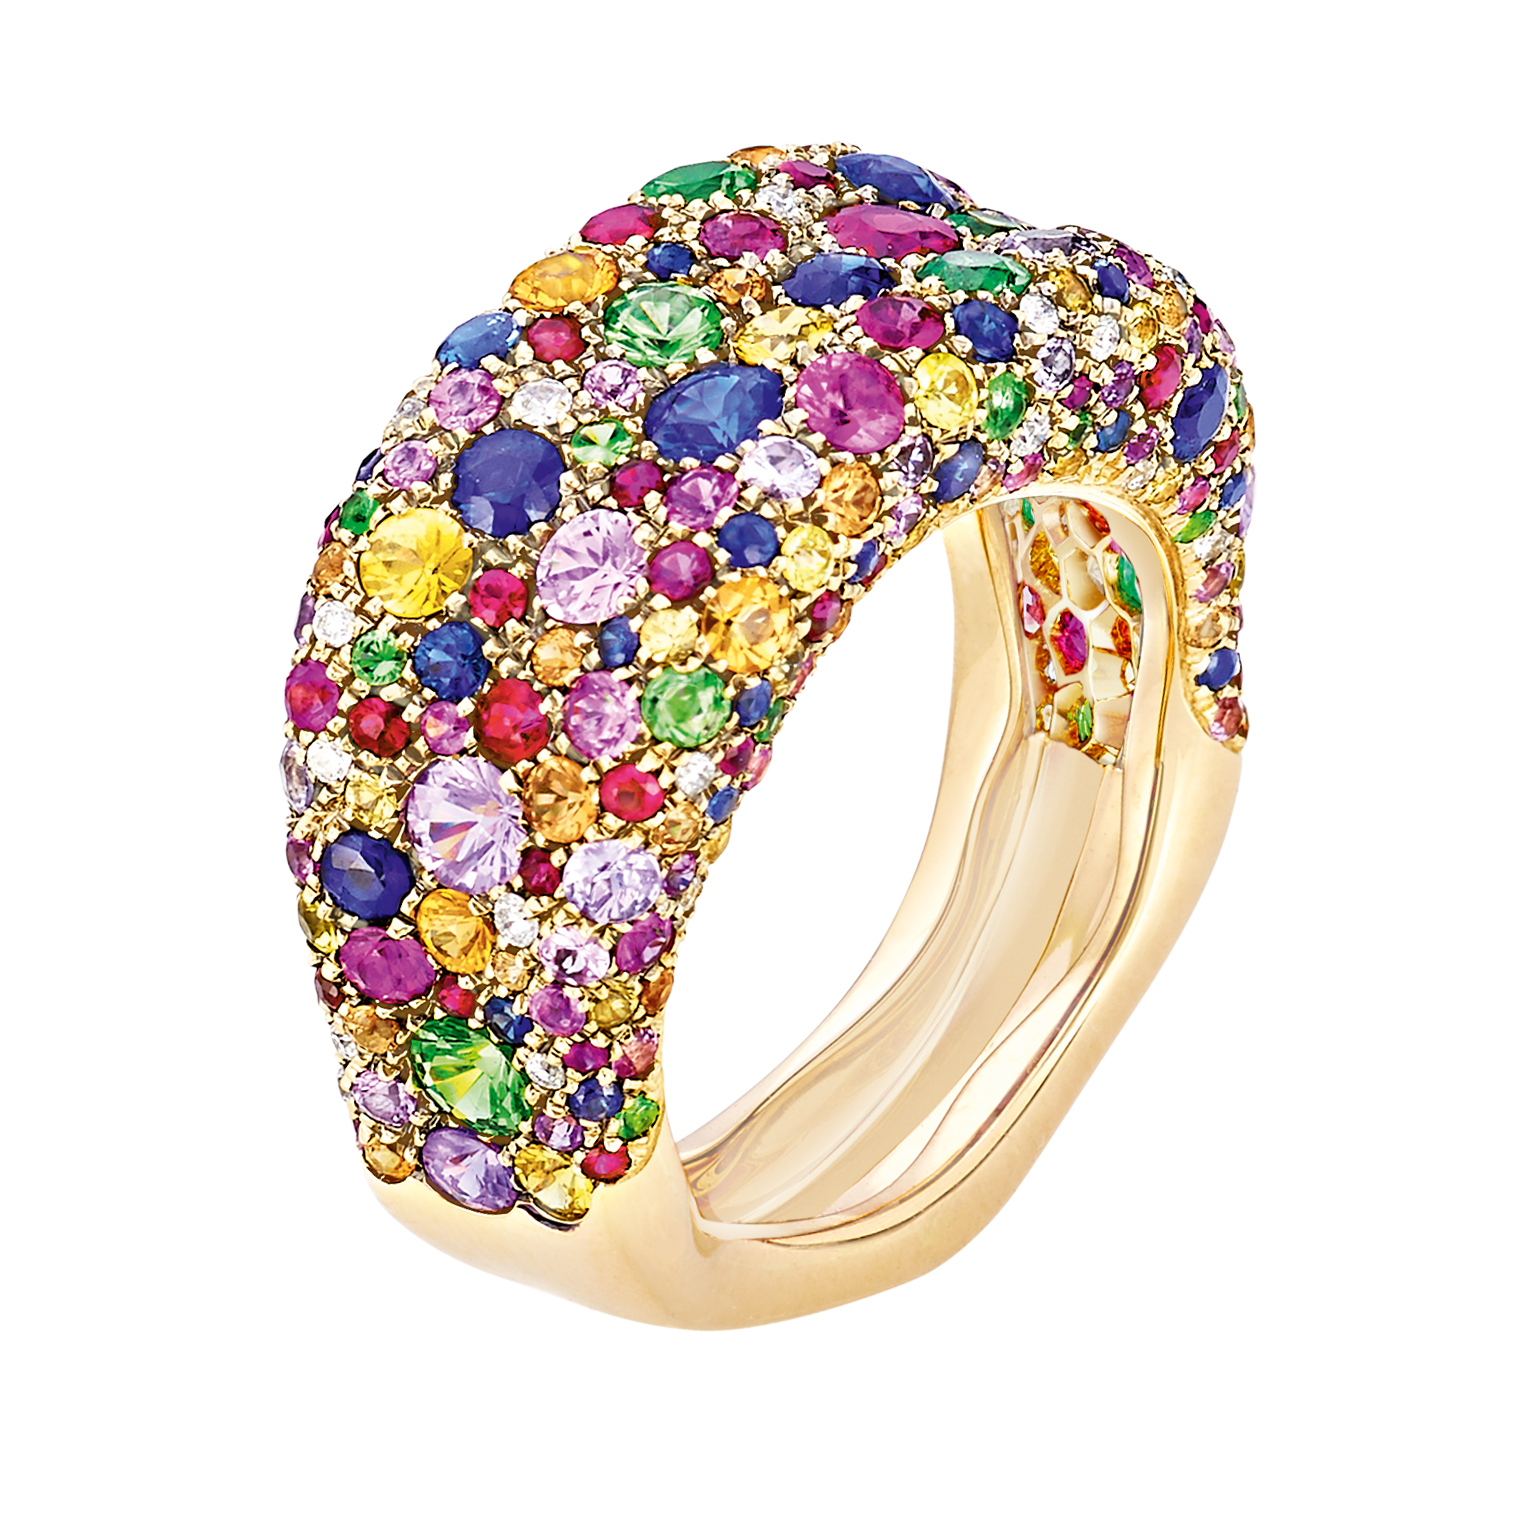 COLLECTION EMOTION MULTICOLOR FABERGÉ BAGUE PETIT MODÈLE